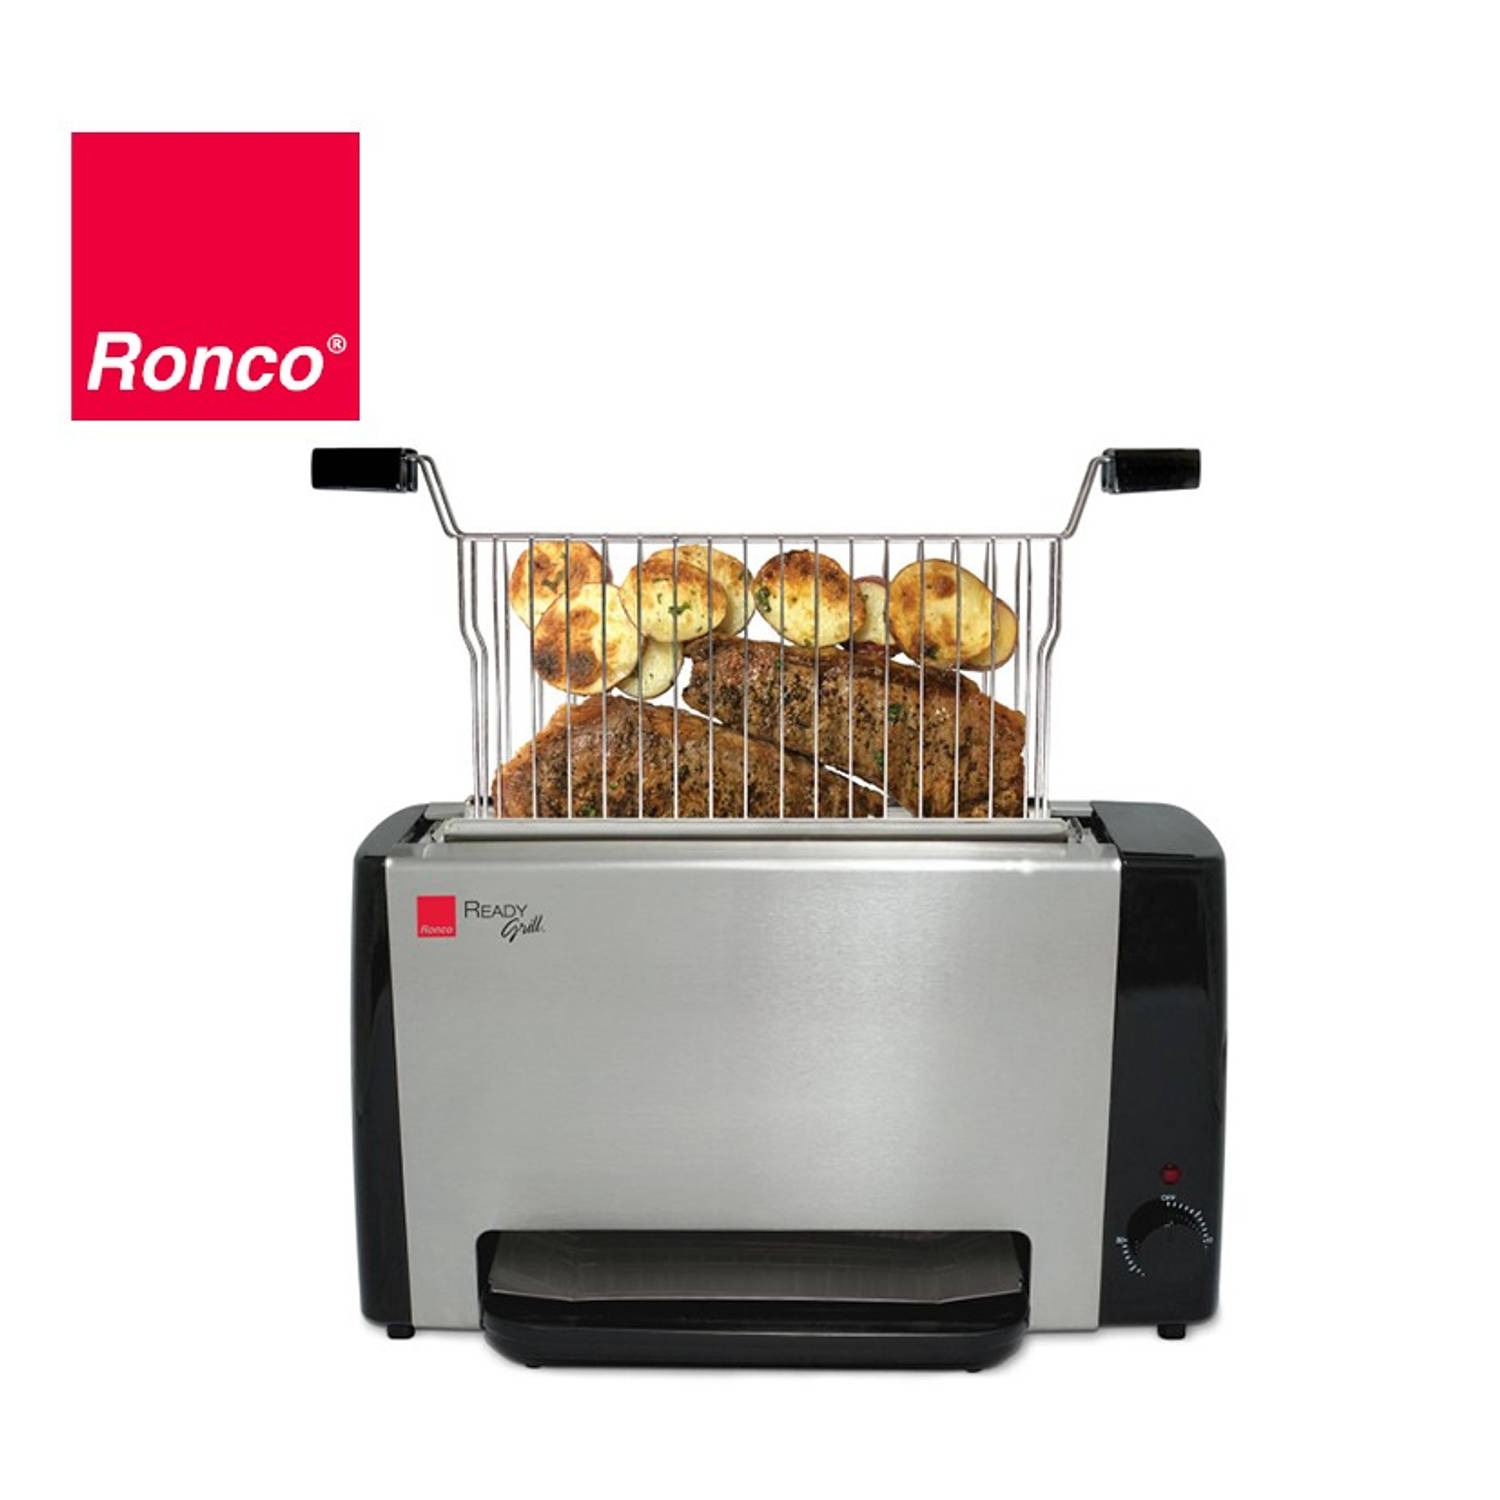 Ronco Grill